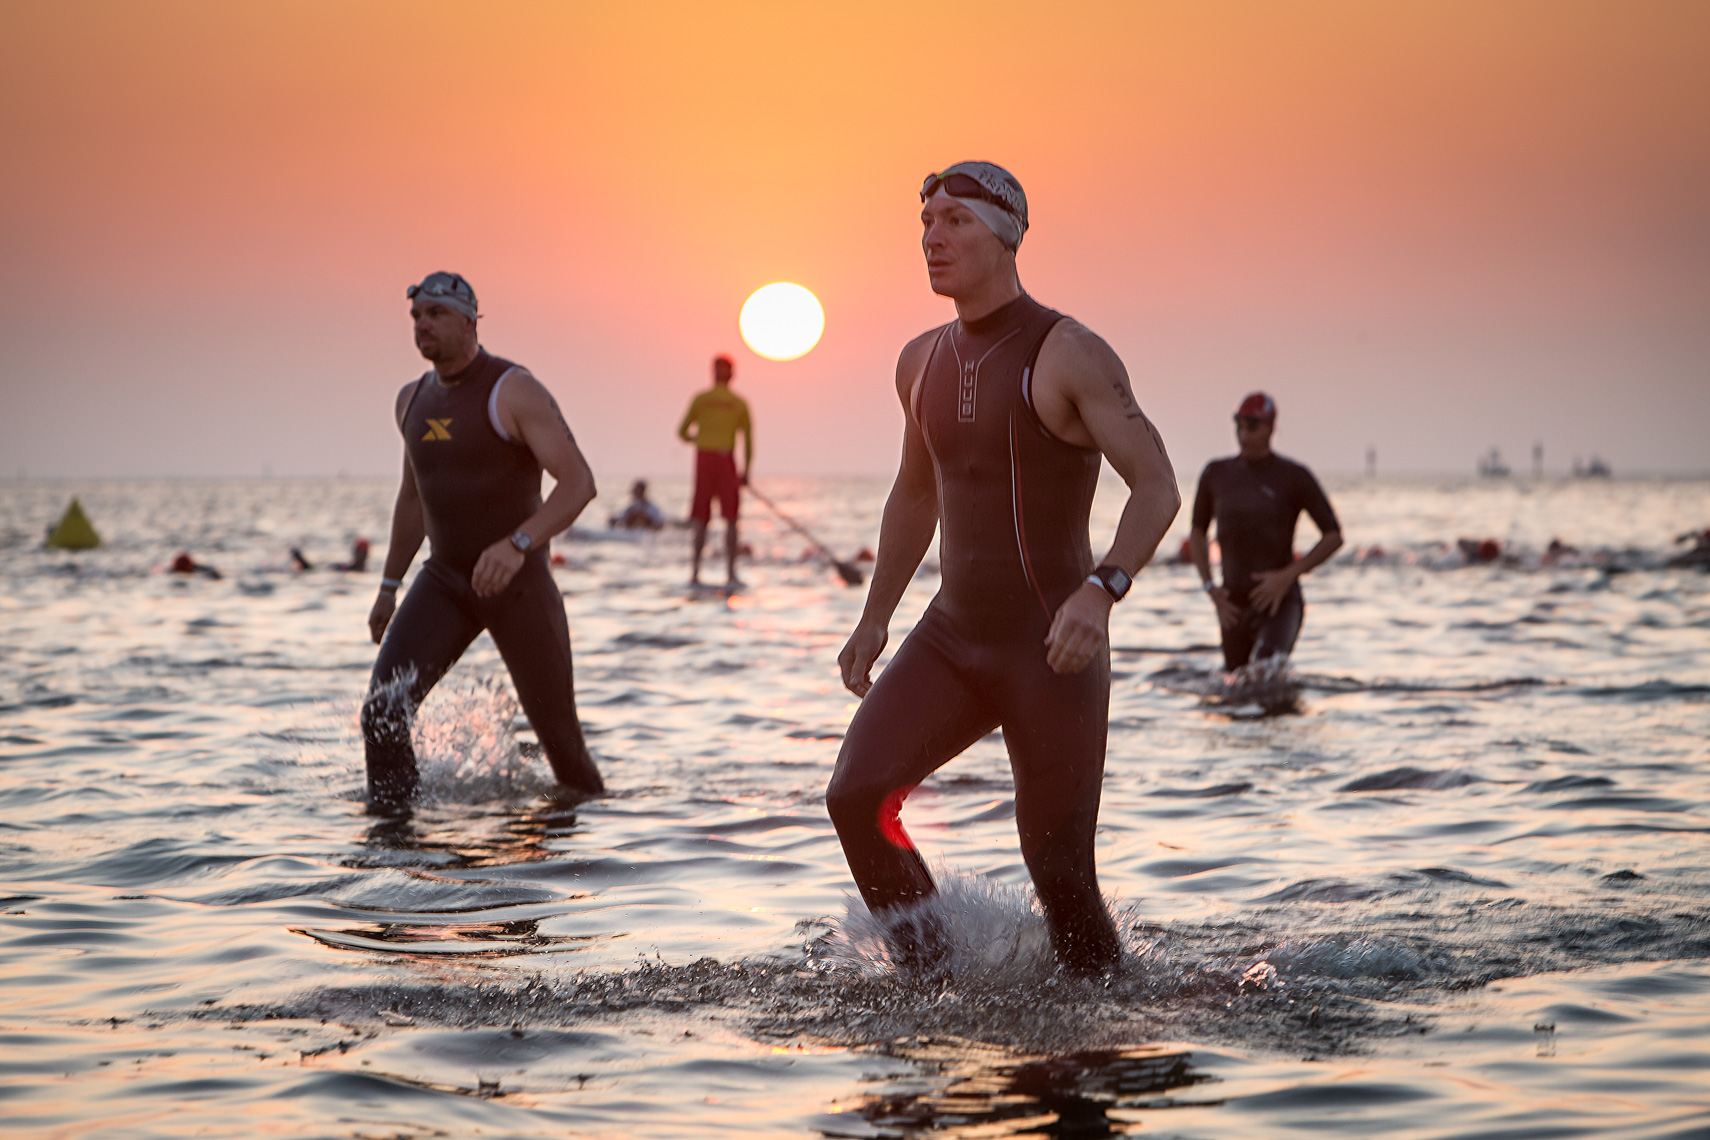 triathletes in Florida waters, shot by Steven P. Widoff, editorial, lifestyle and advertising commercial photographer in Tampa, Florida.